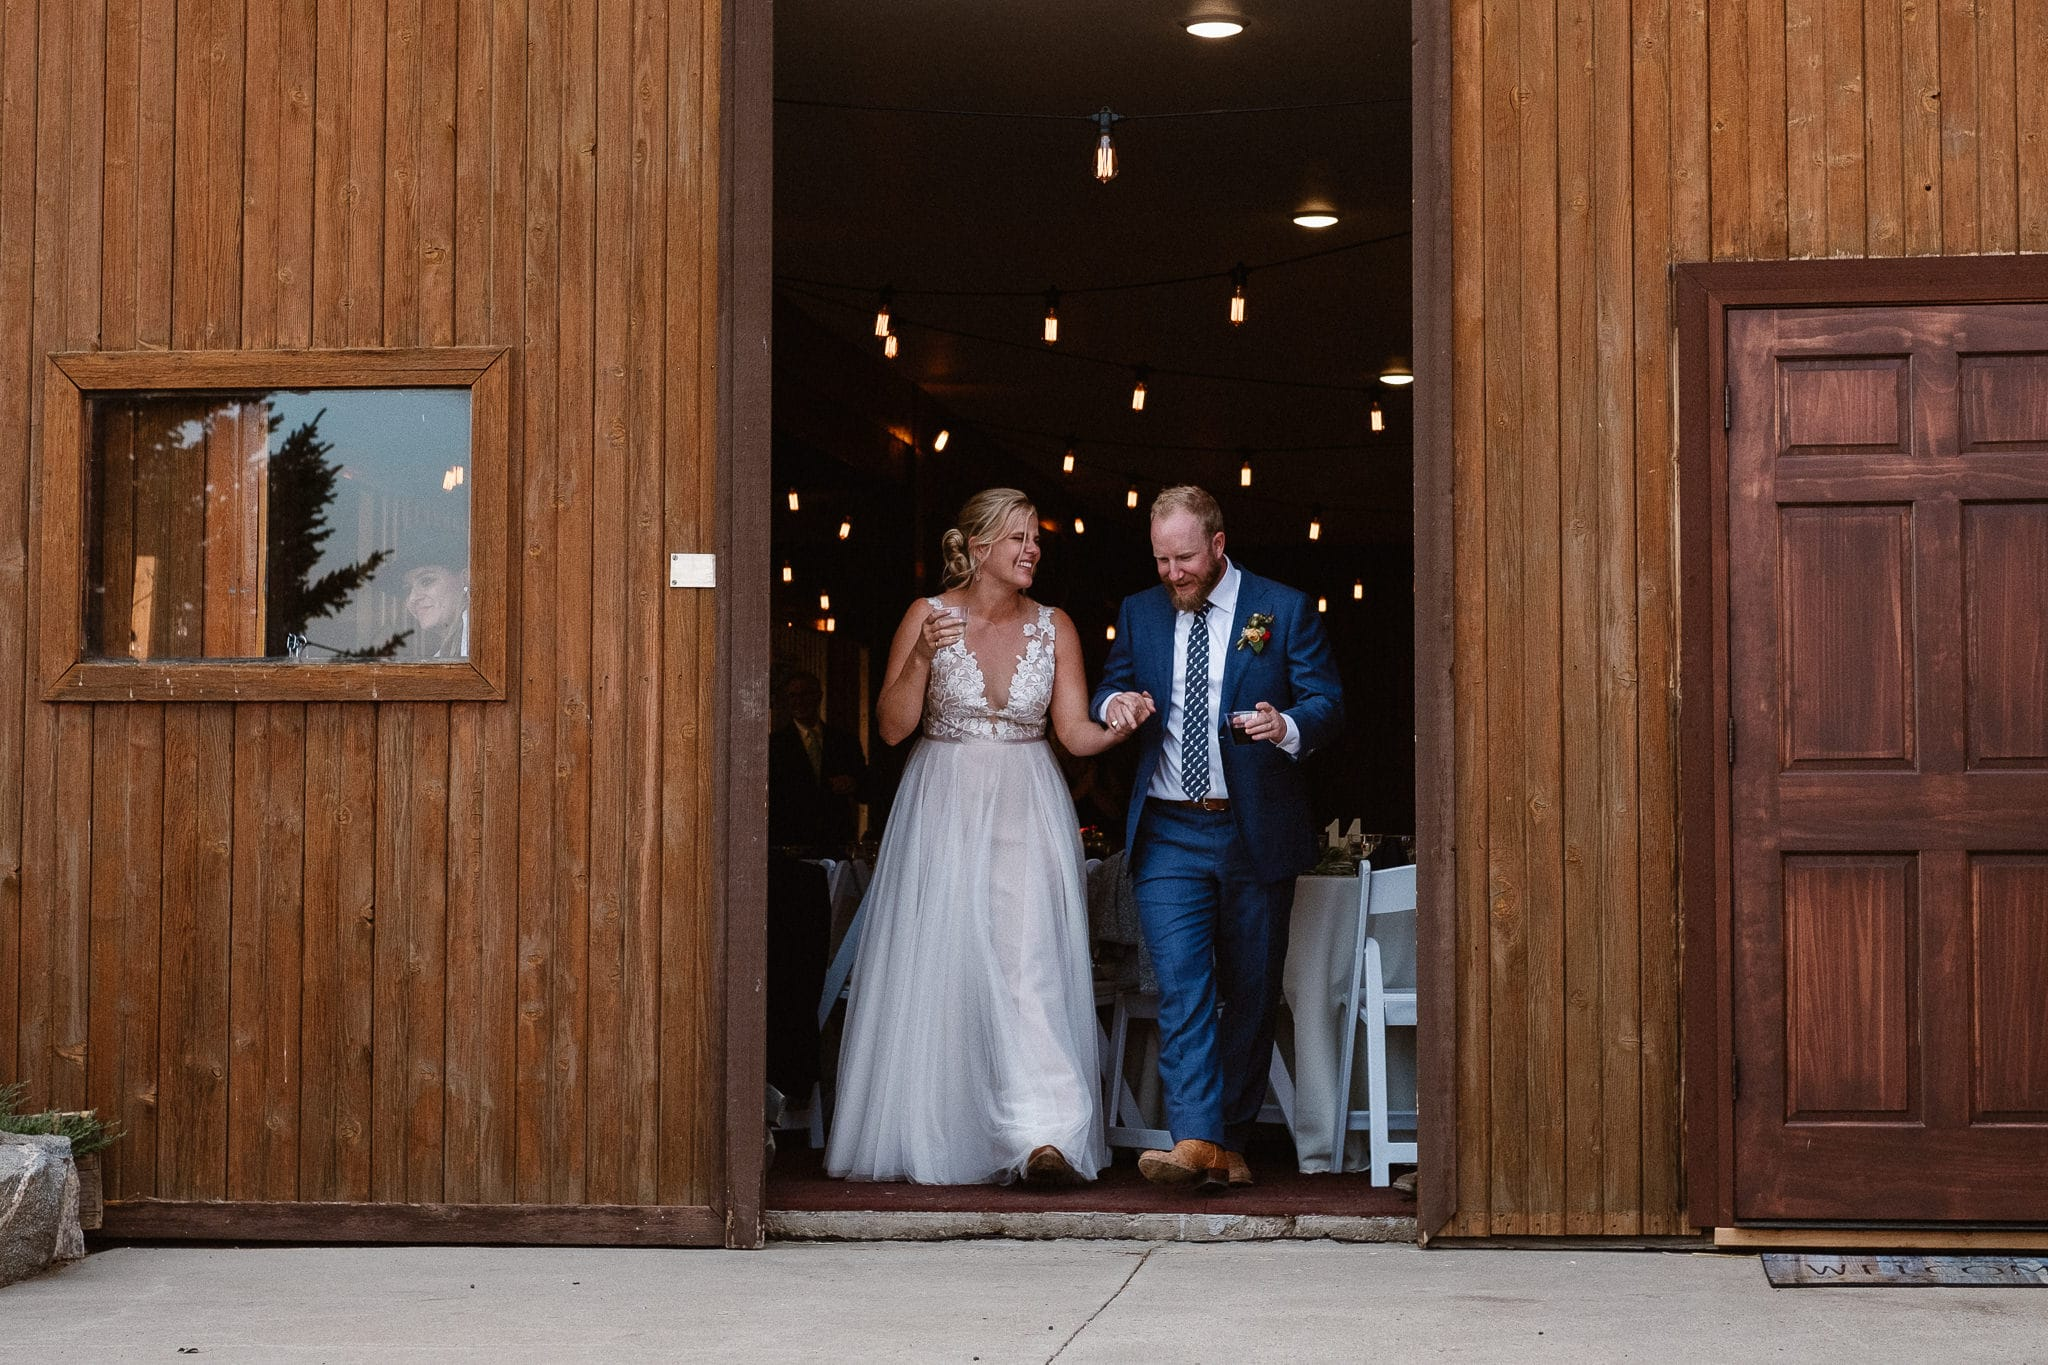 Steamboat Springs wedding photographer, La Joya Dulce wedding, Colorado ranch wedding venues, bride and groom grand entrance